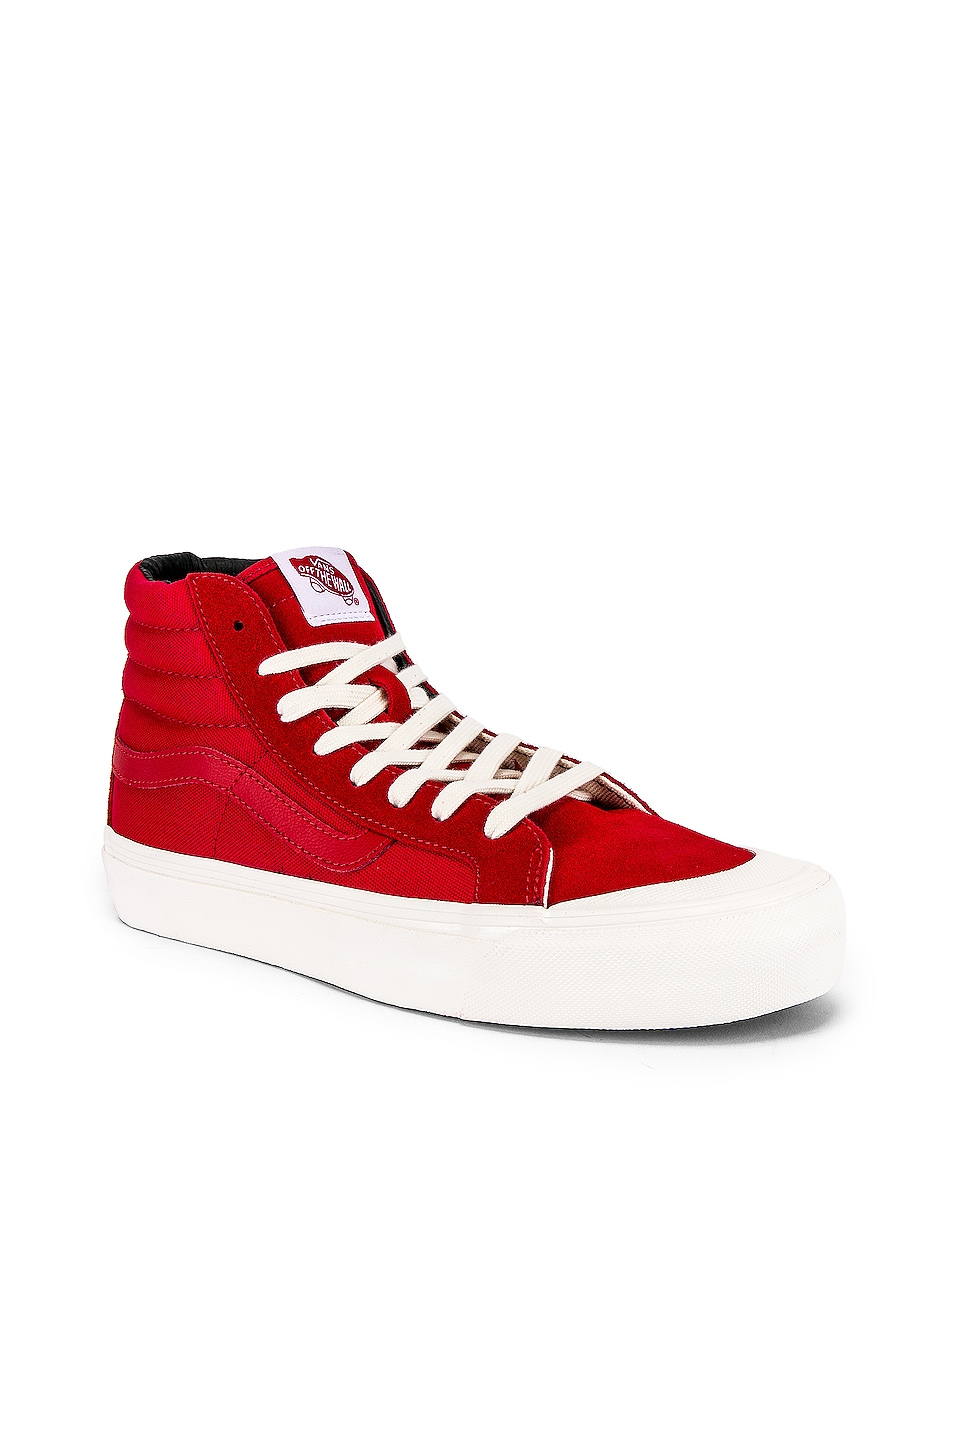 Image 2 of Vans Vault OG Style 138 LX in Racing Red & Checkerboard